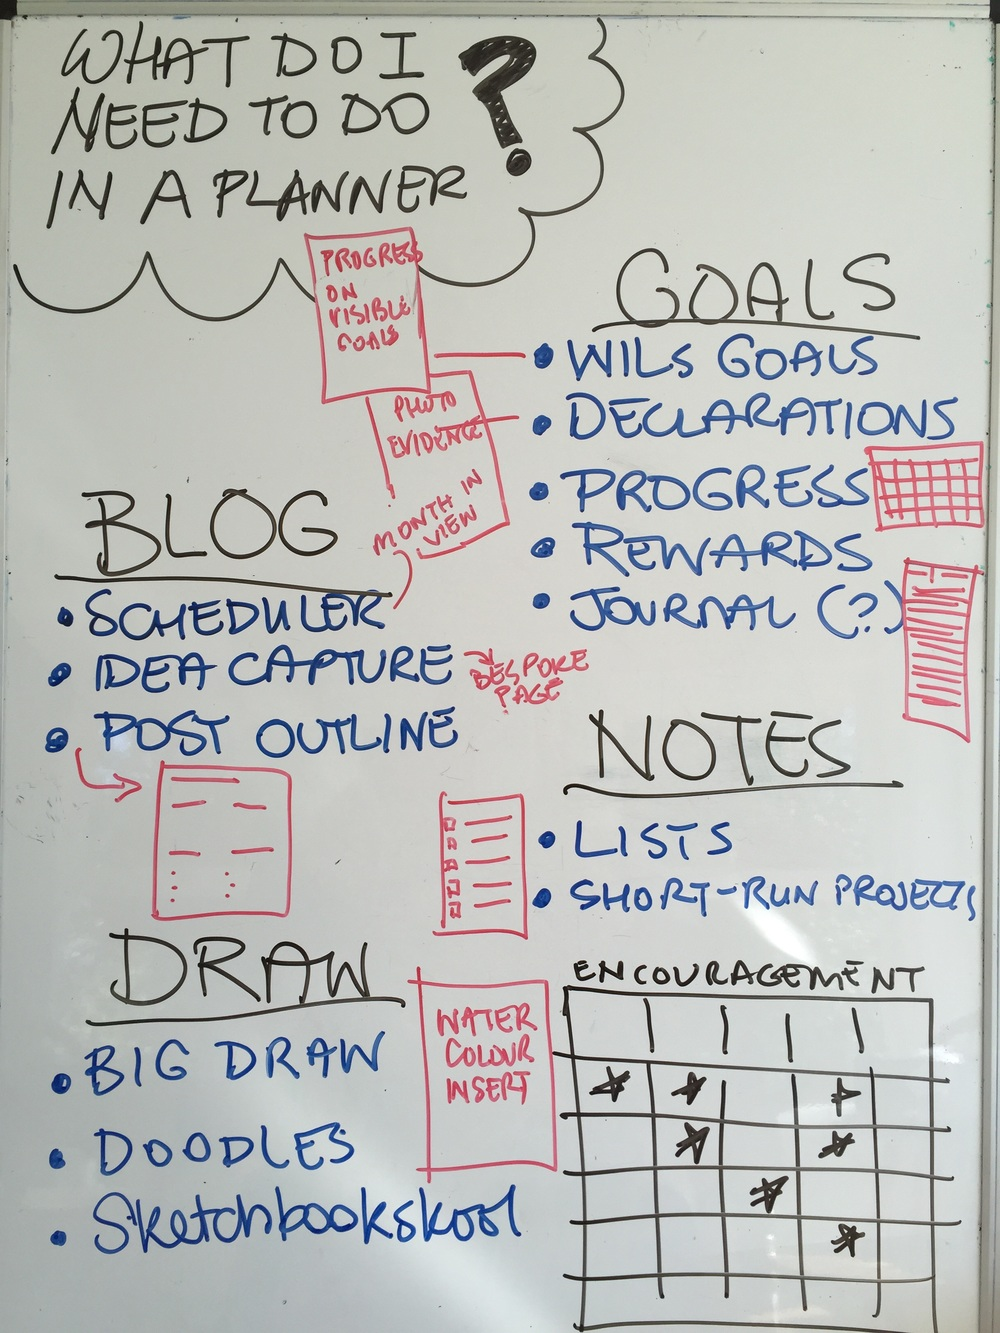 Who doesn't love a white board? here's my DISTILLATION of what I need in a personal planner.